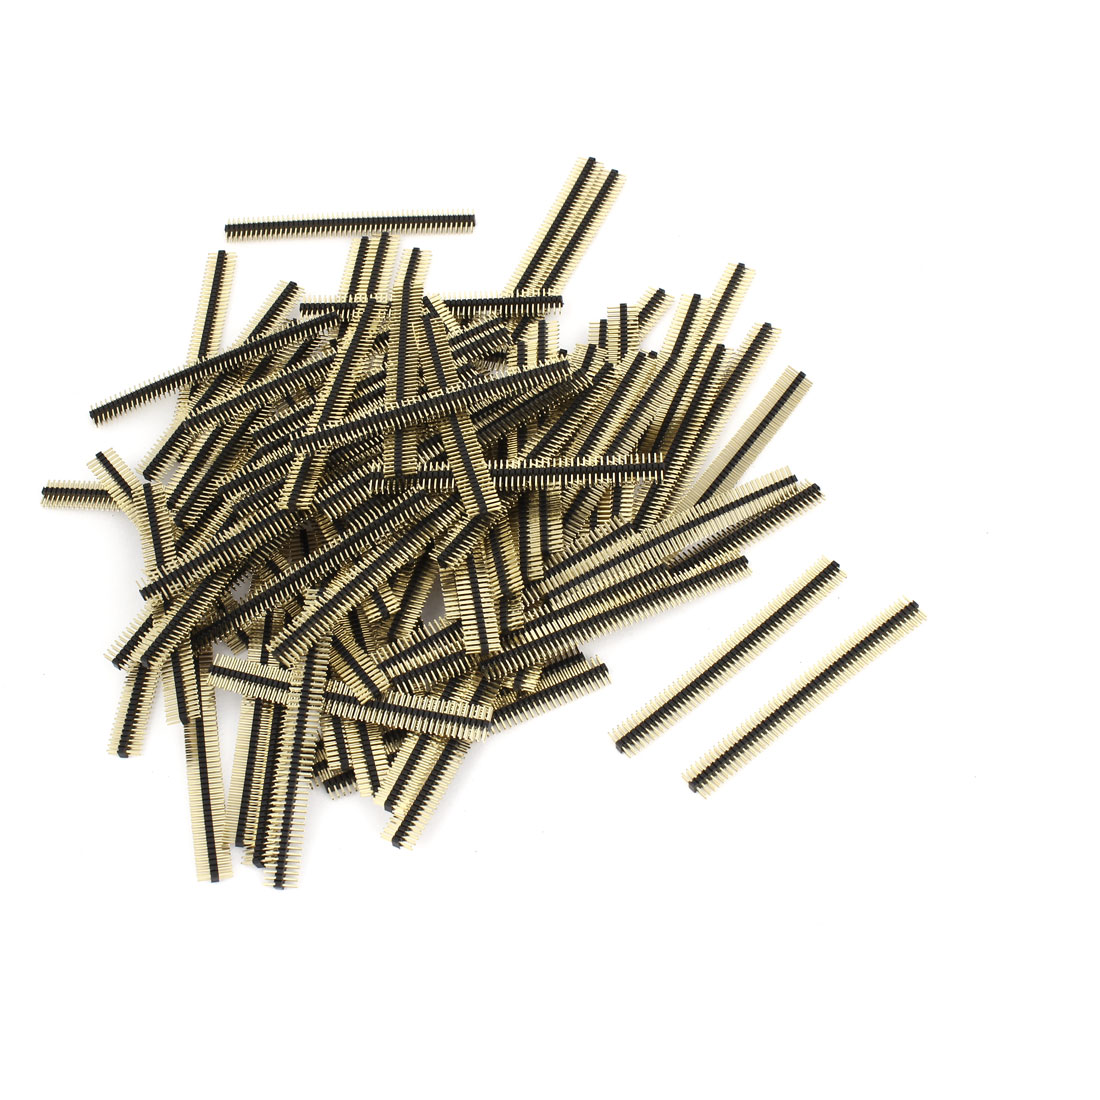 100Pcs 50 Position 1.27mm Pitch Double Row Straight Pin Header Strip